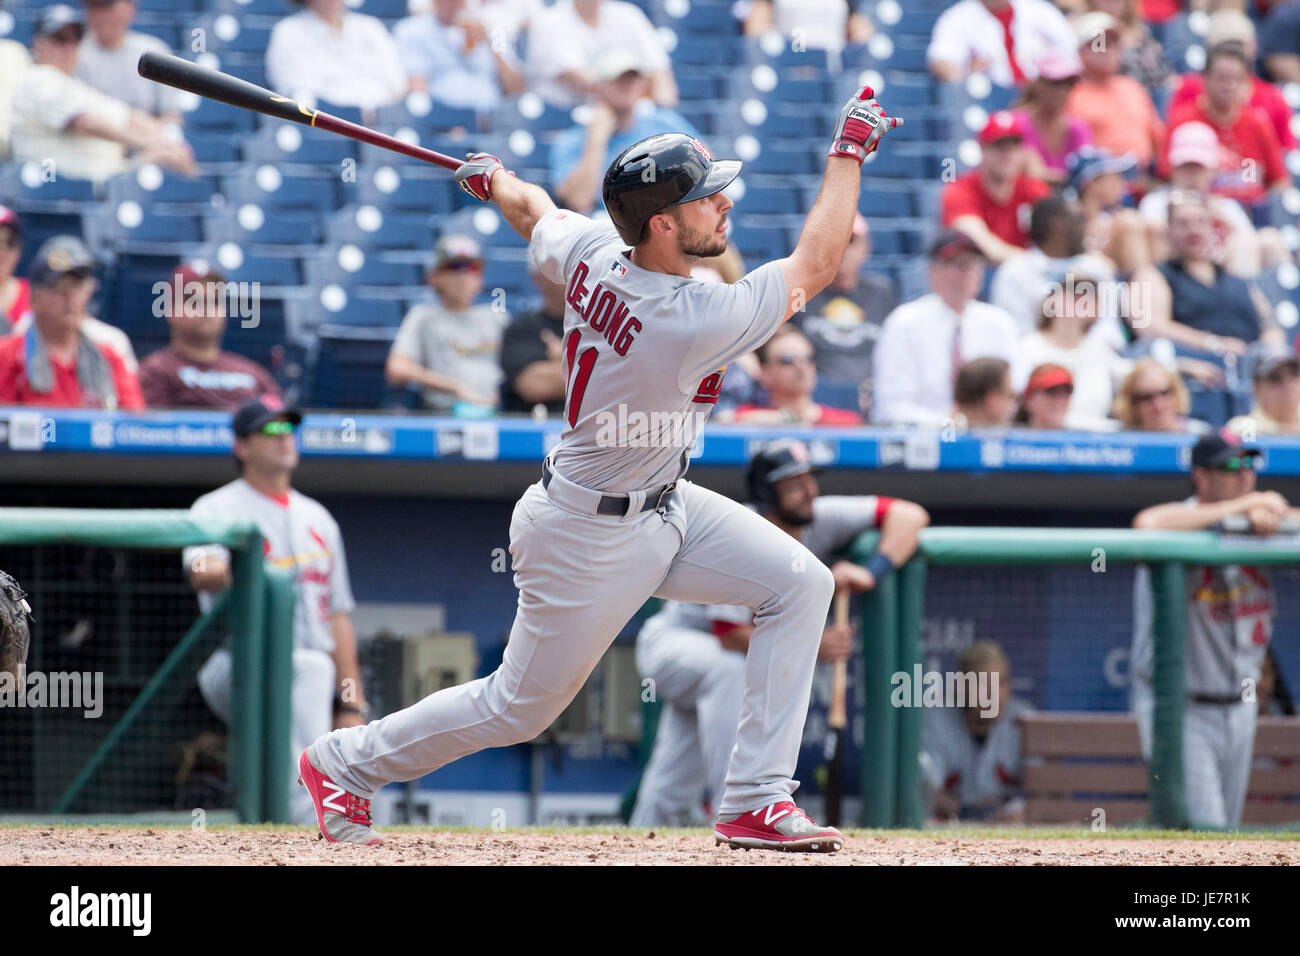 June 22, 2017: St. Louis Cardinals second baseman Paul DeJong (11) hits a solo home run during the MLB game between - Stock Image